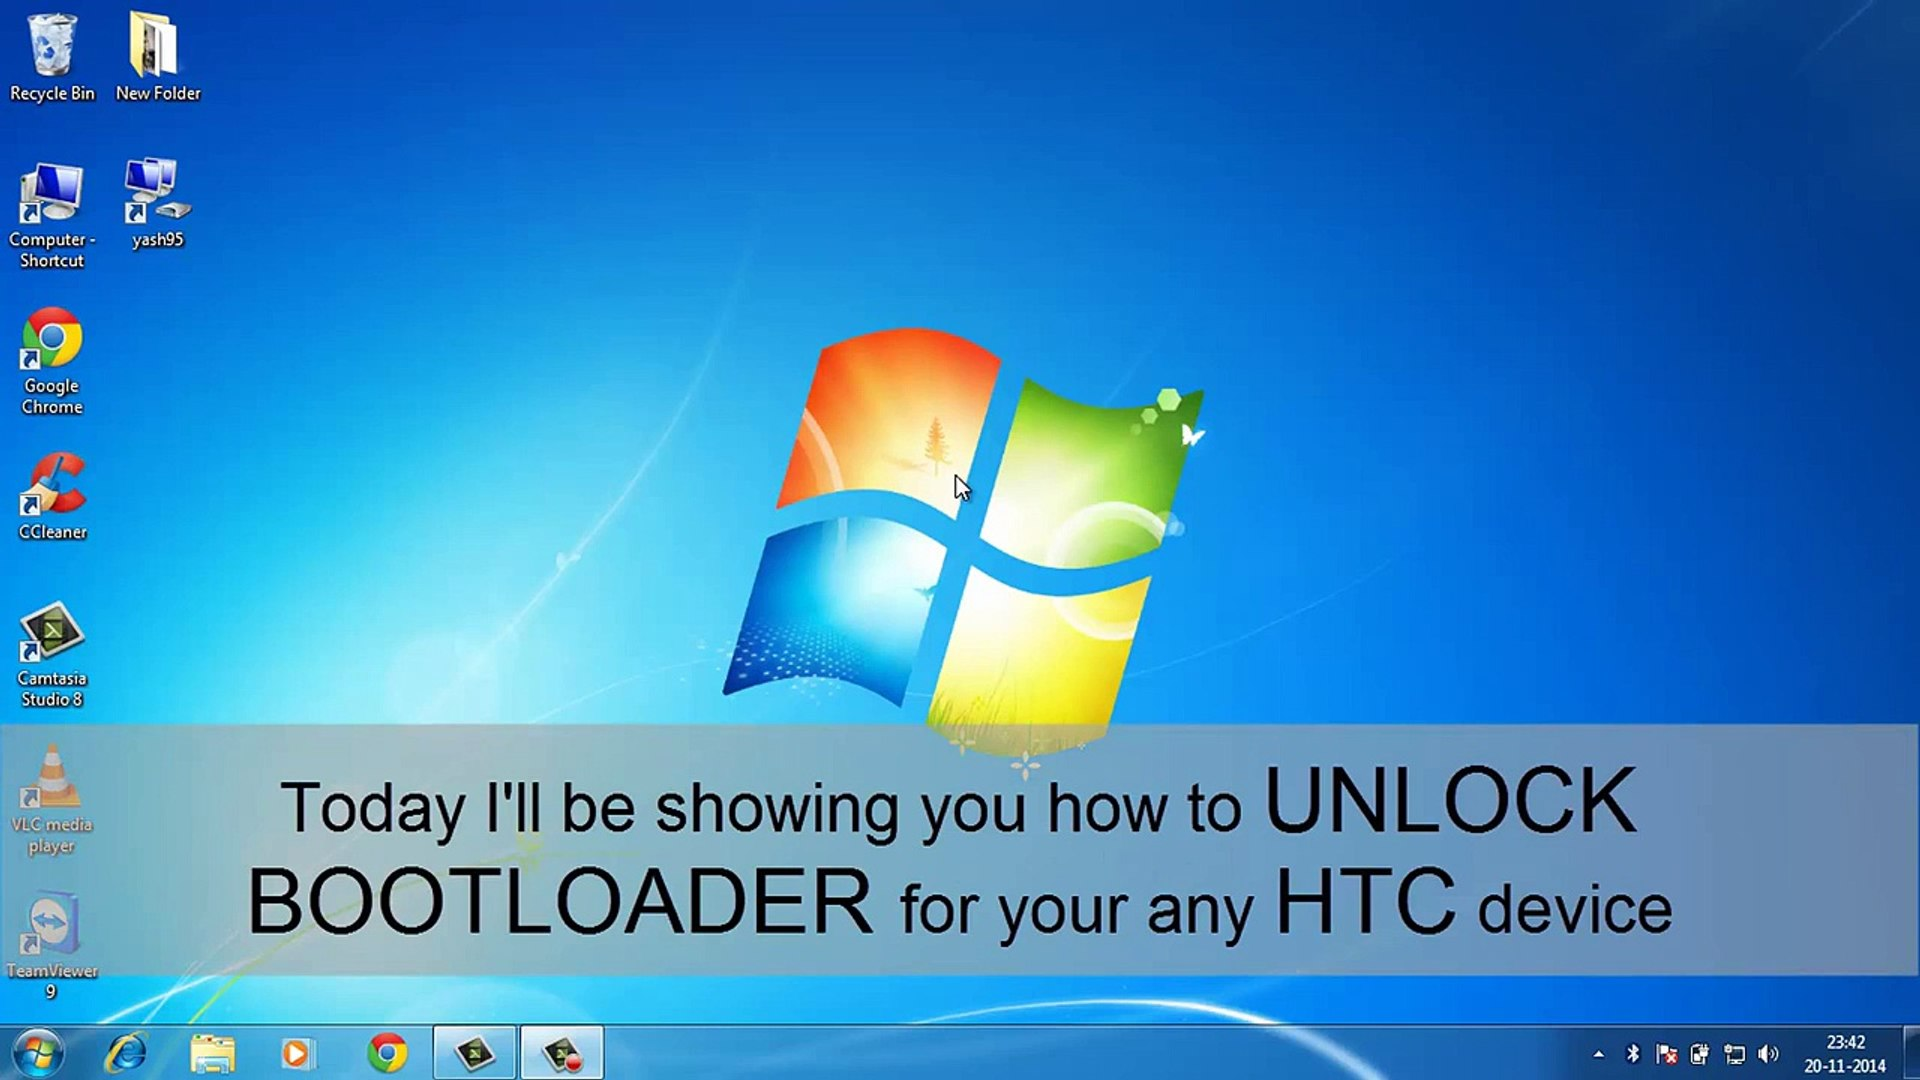 How to unlock bootloader for htc [SUPPORTS ALL MODELS]